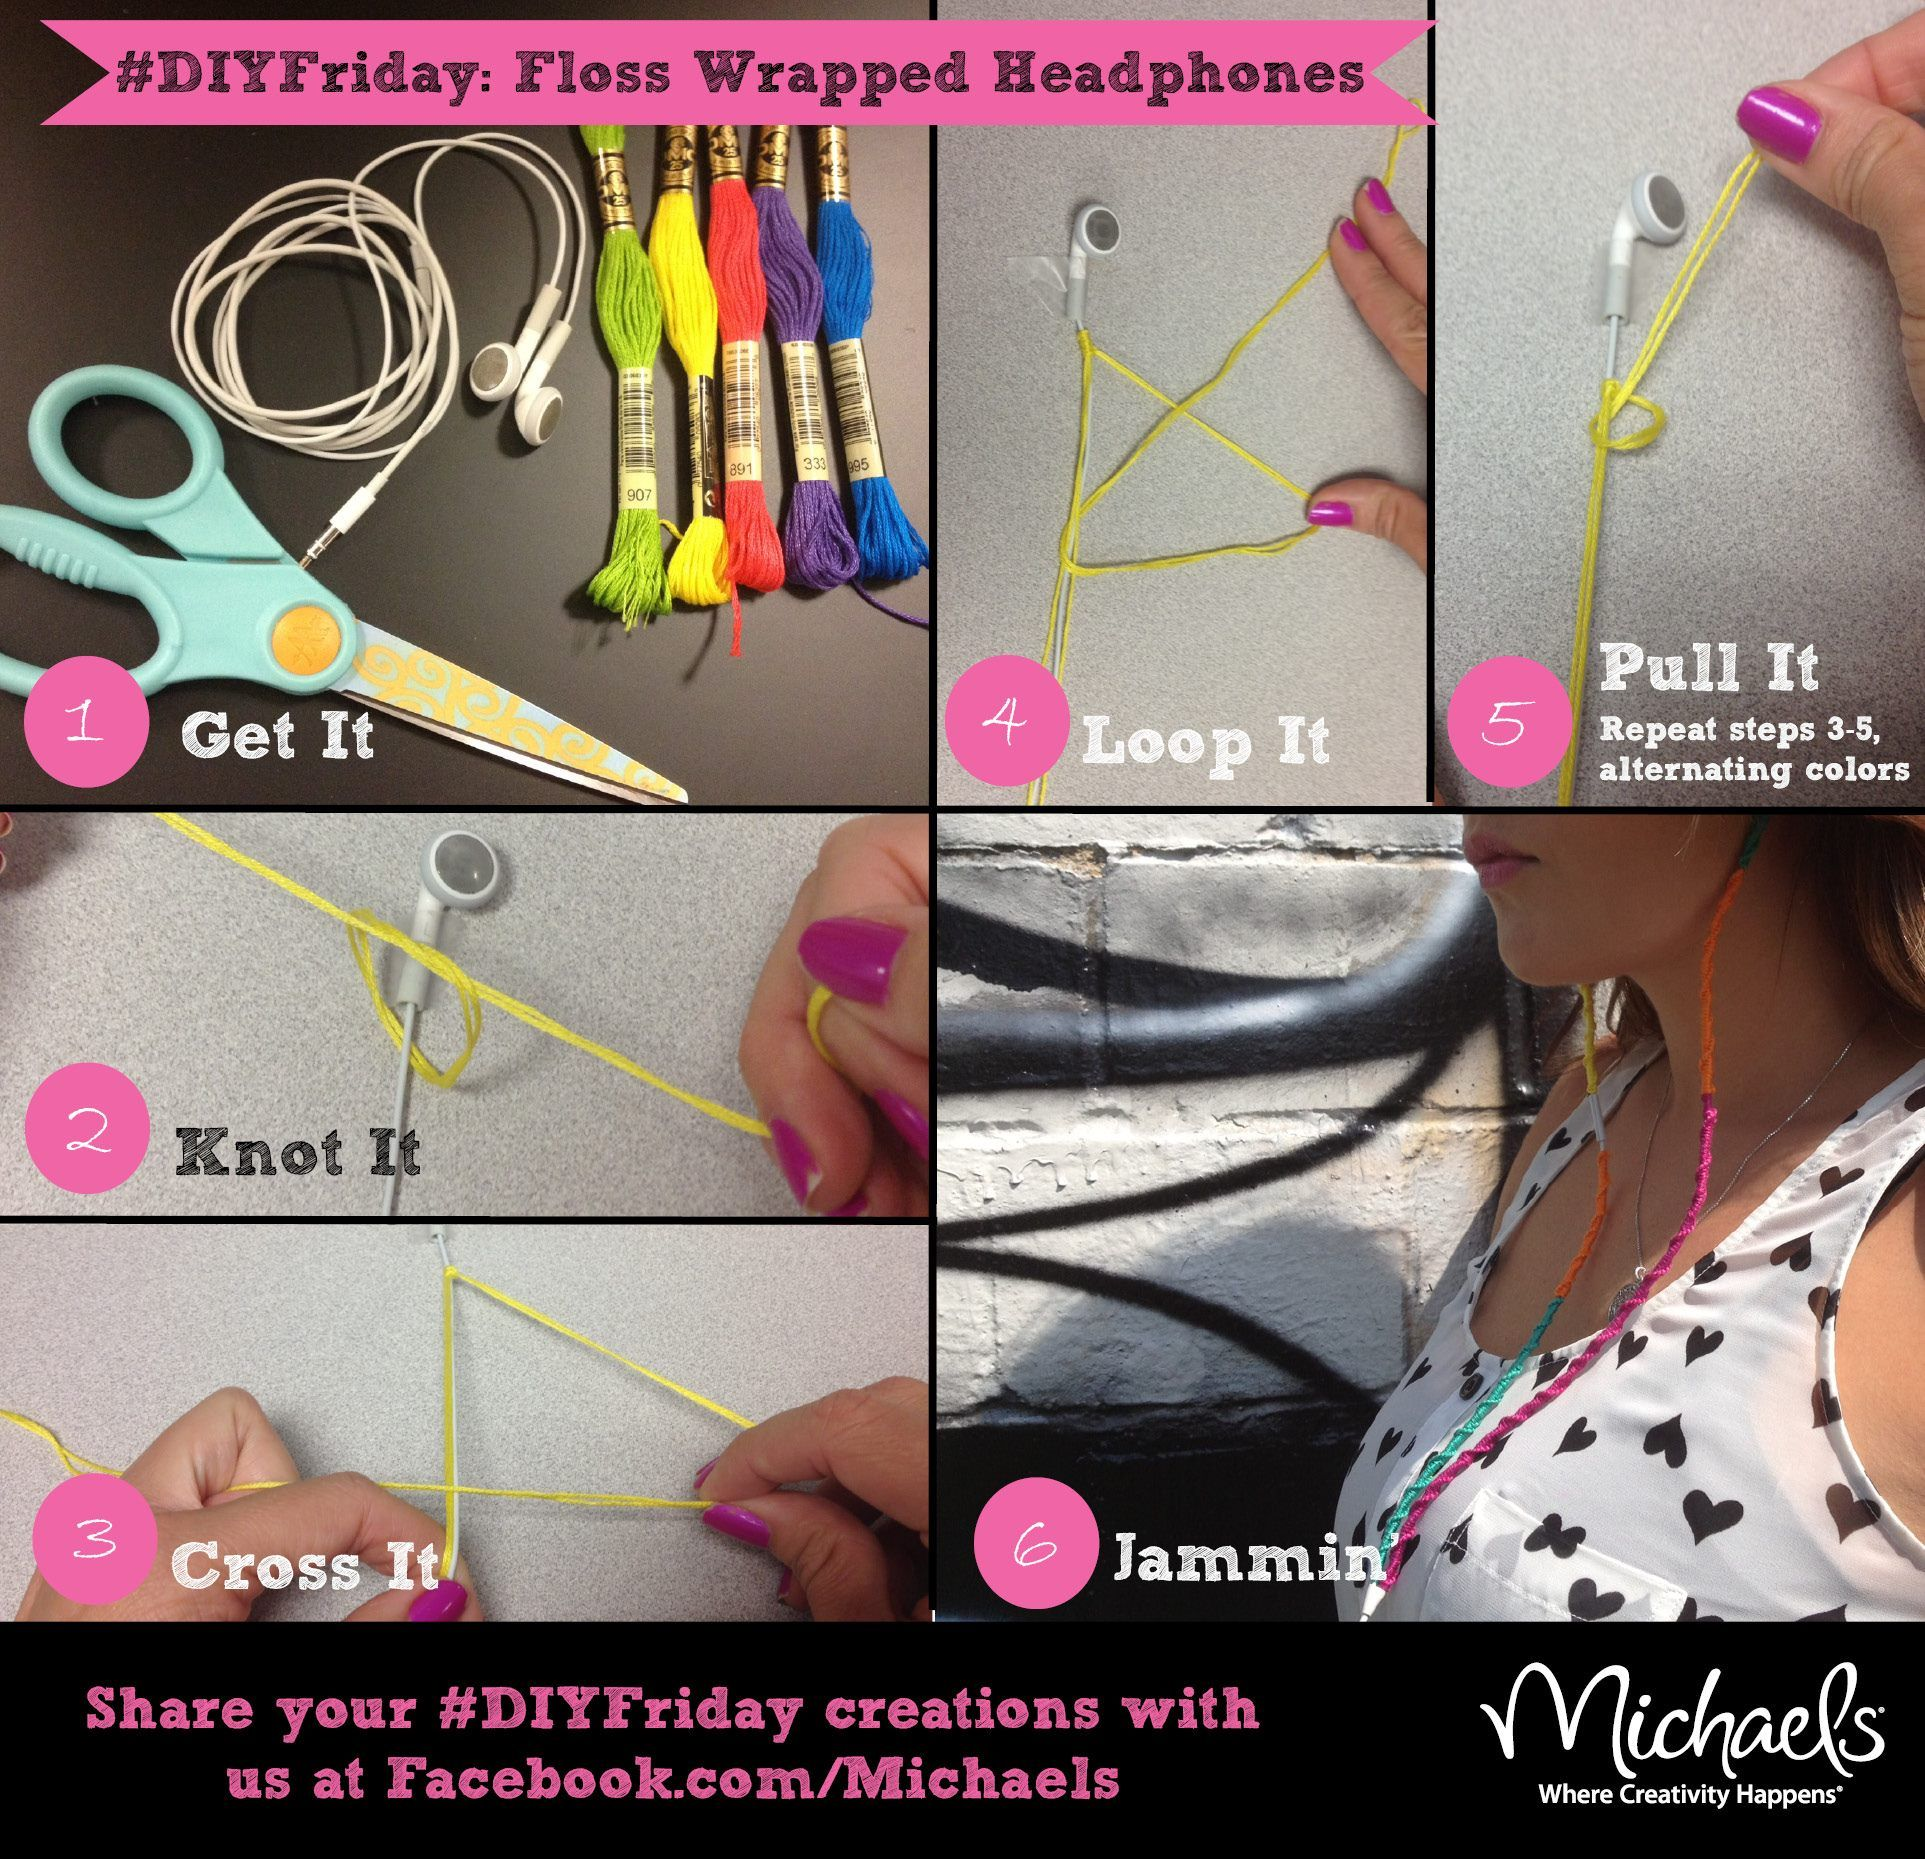 Michaels Diy Floss Wrapped Headphones Clever Crafts Pinterest